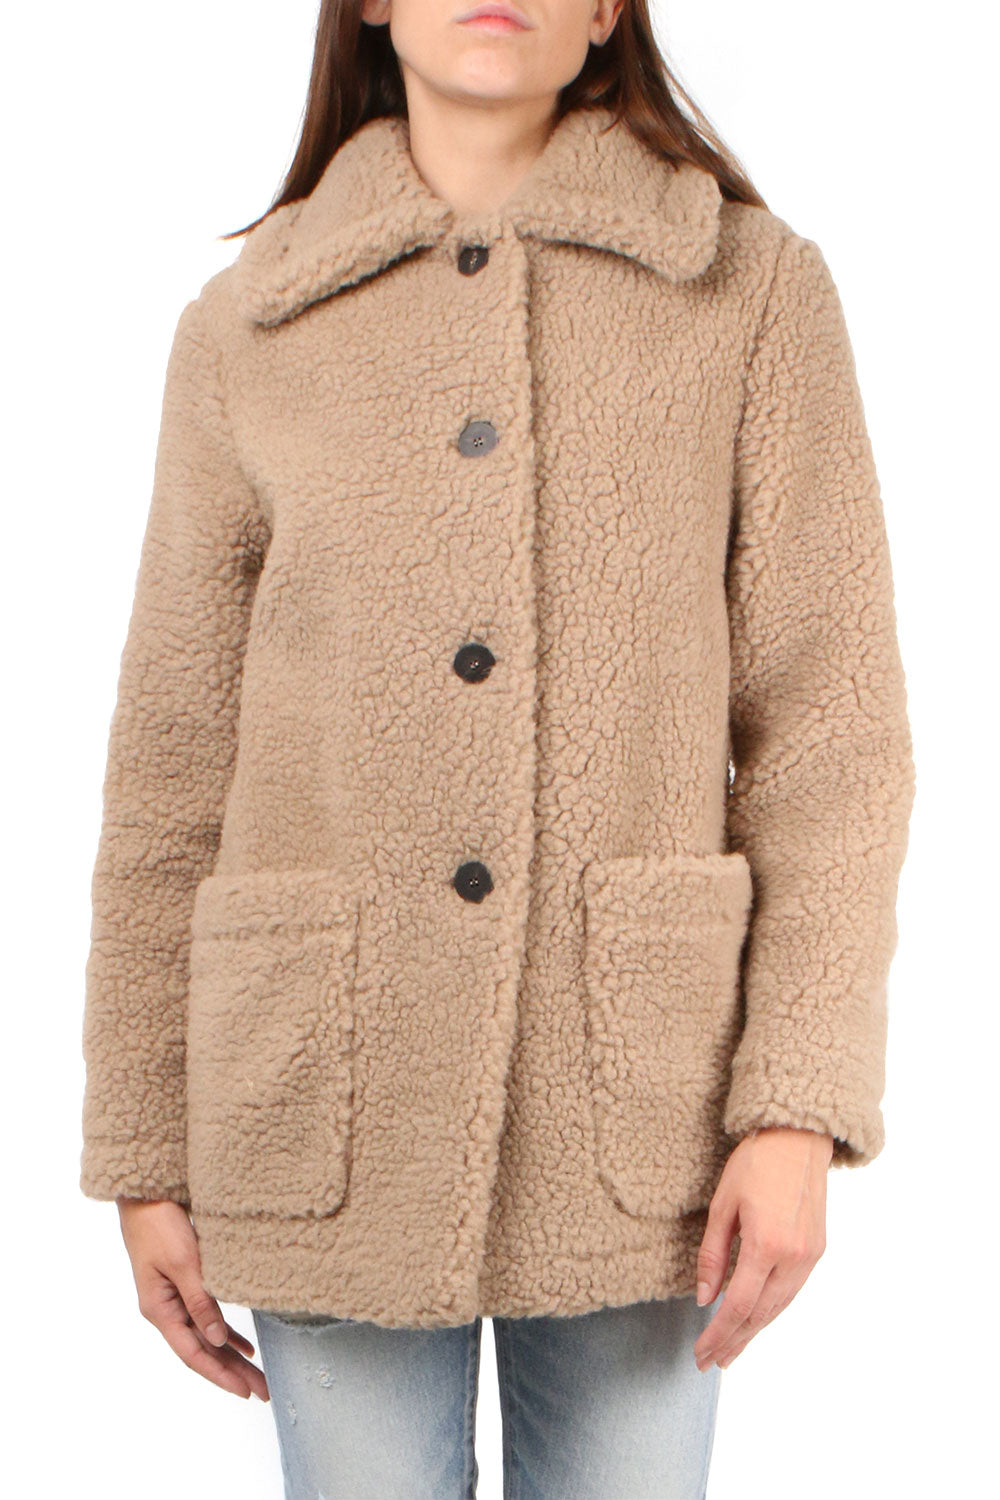 Shearling Collared Jacket